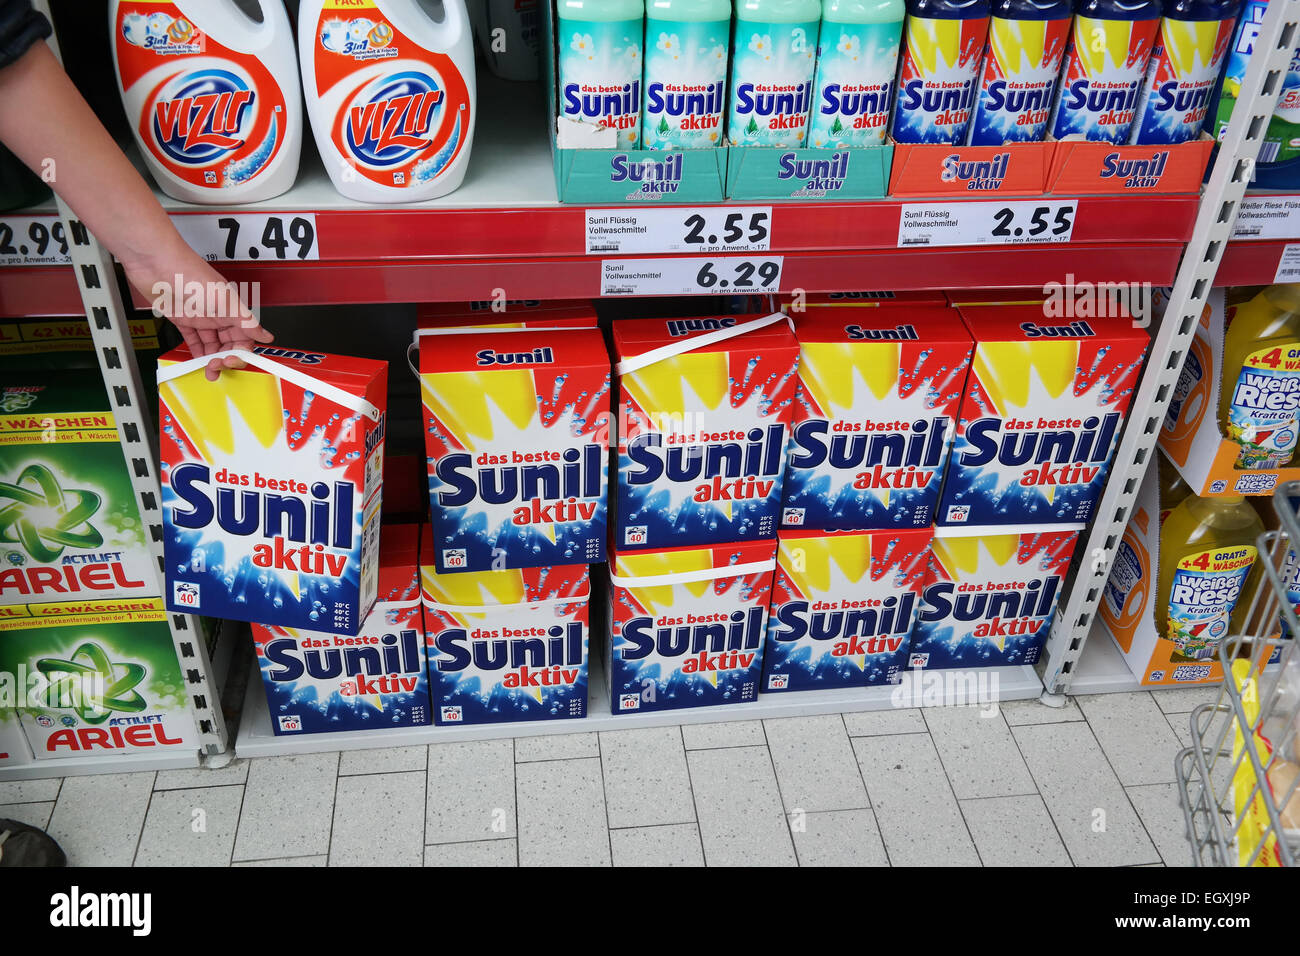 Product of the unilever stock photos product of the unilever germany february 2015 sunil a detergents for clothes cleaning a unilever brand in a biocorpaavc Images